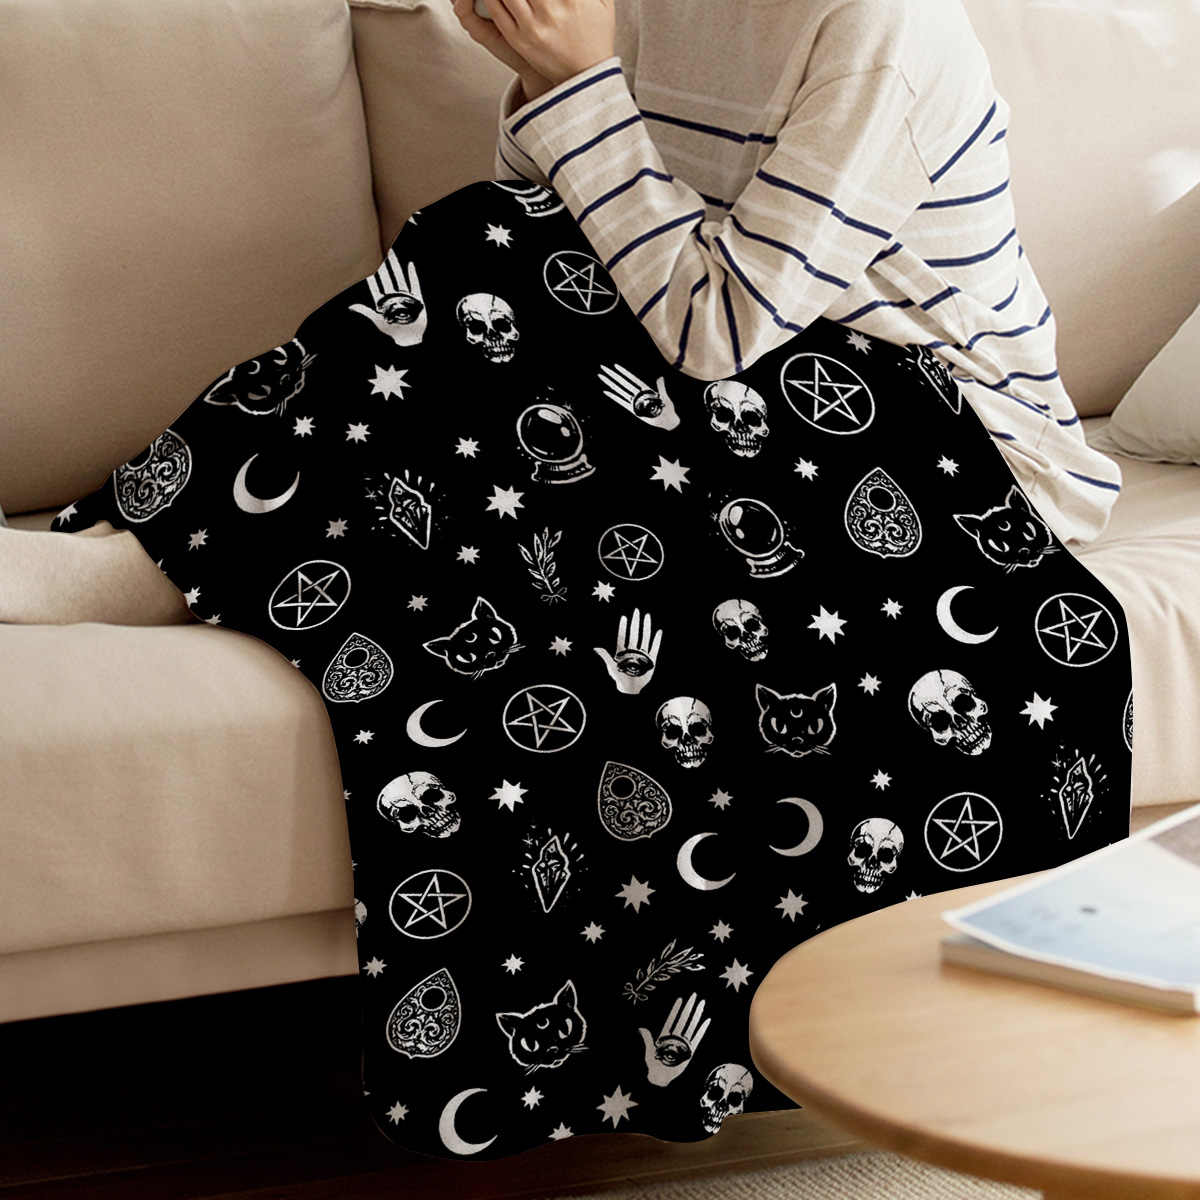 BIGHOUSES Throw Blanket Black Skull Head And Cat Throw Blanket Soft Warm Microfiber Blanket Flannel Blanket